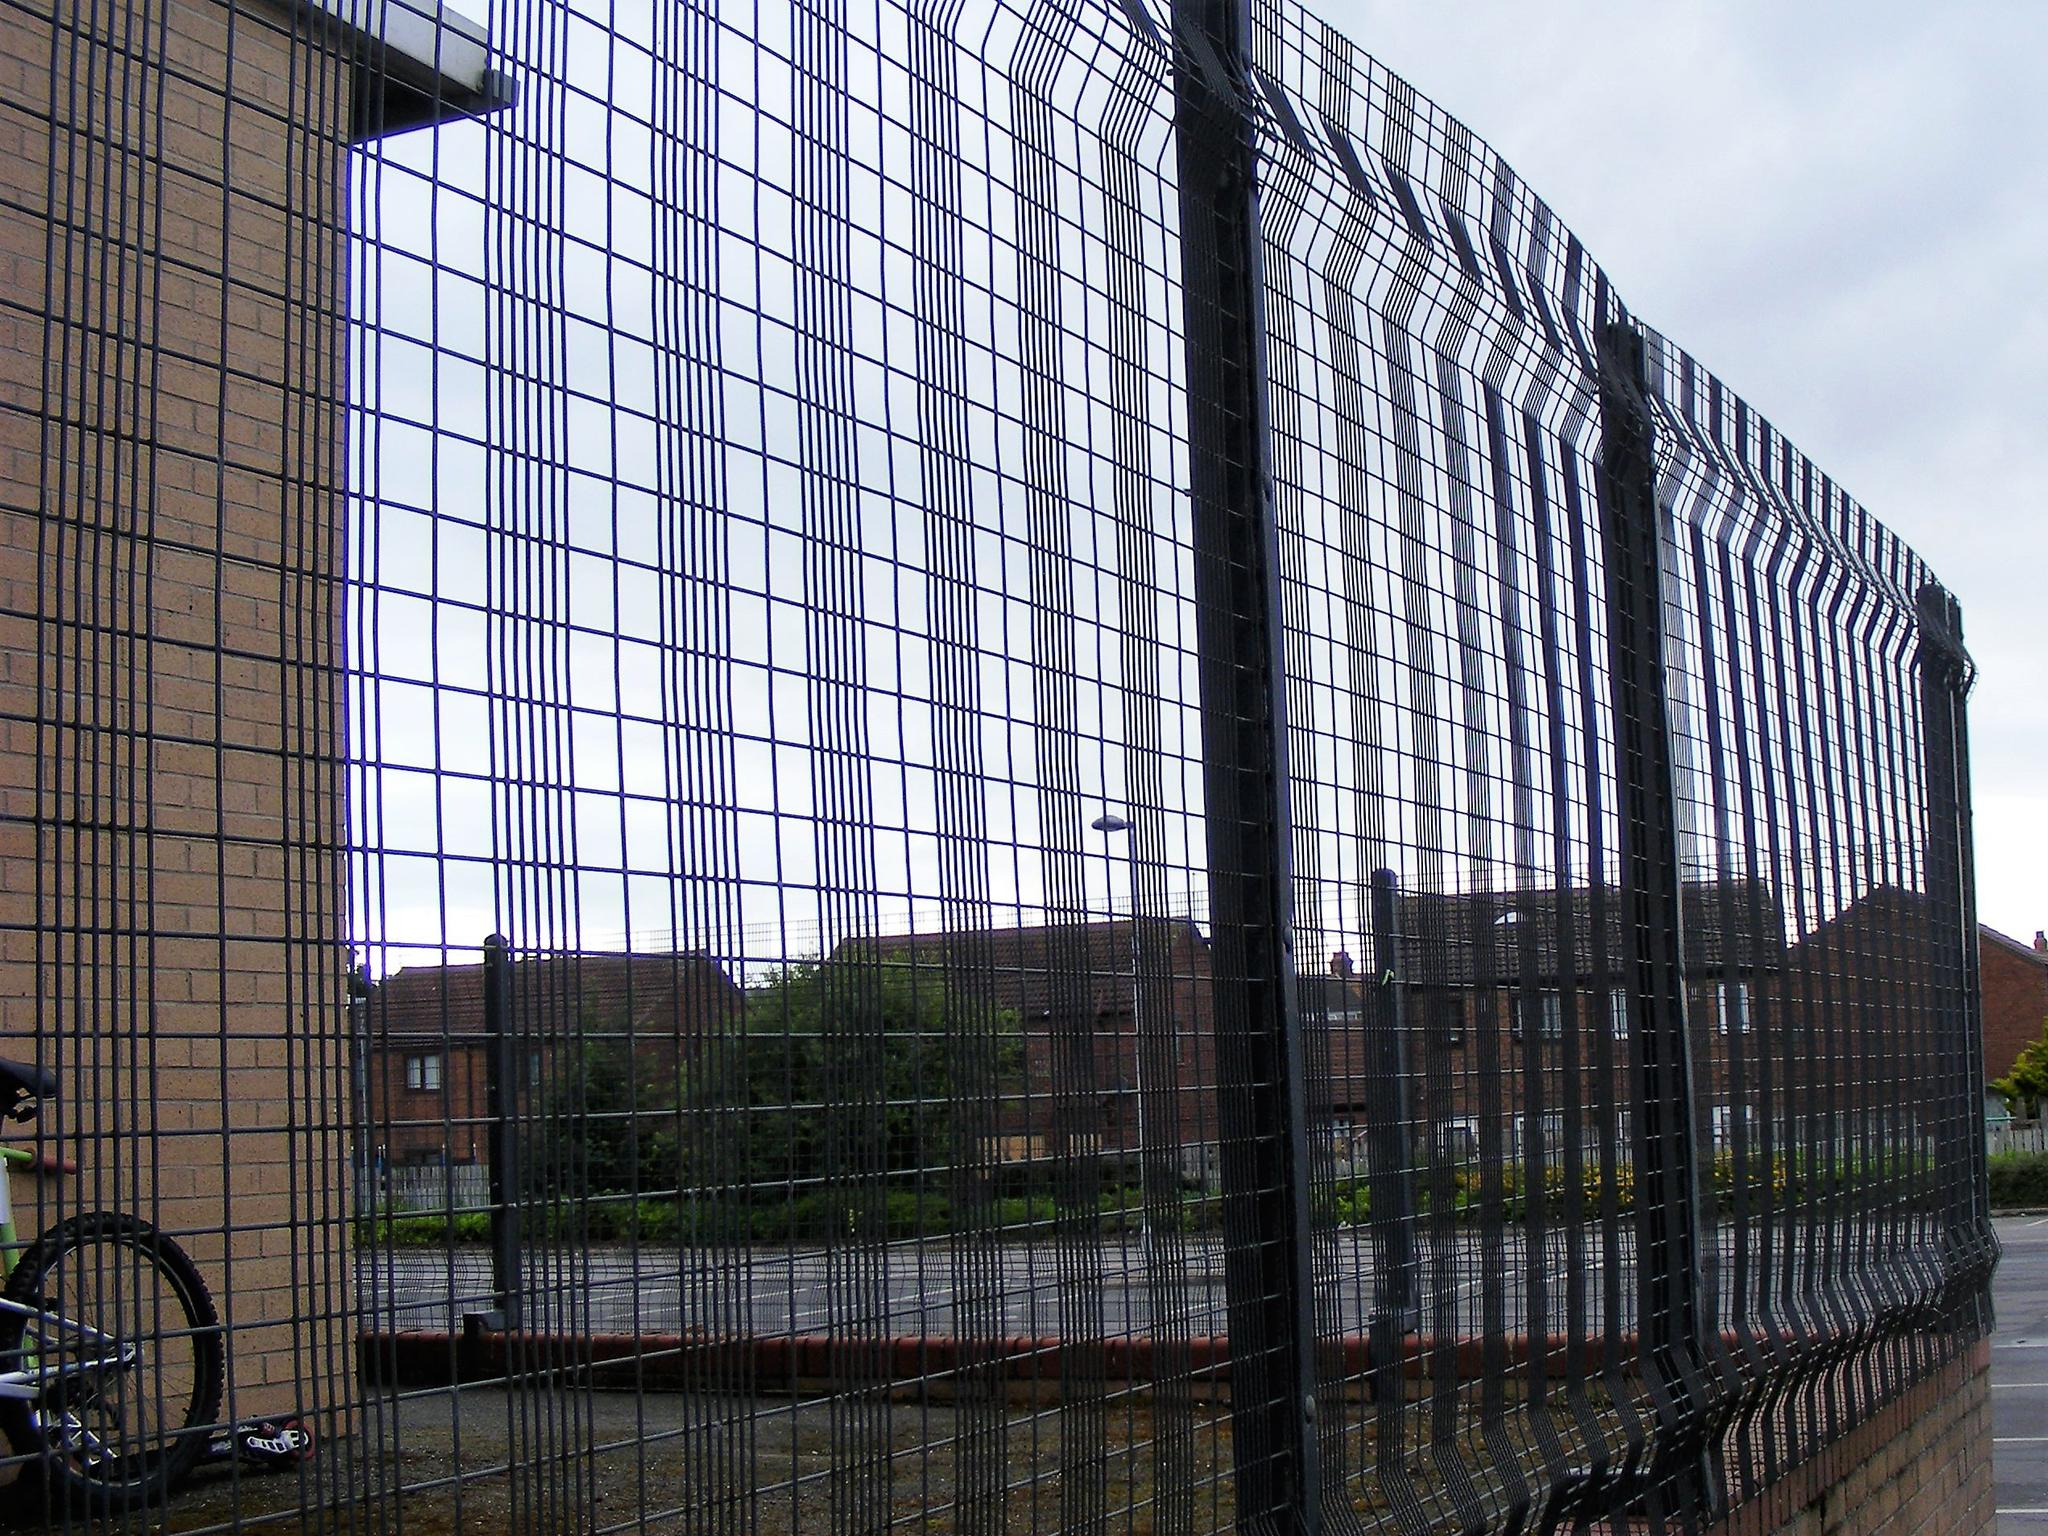 Grim And Proper Why So Many School Look Like Prisons The Independent Joining Electric Fencing Wire